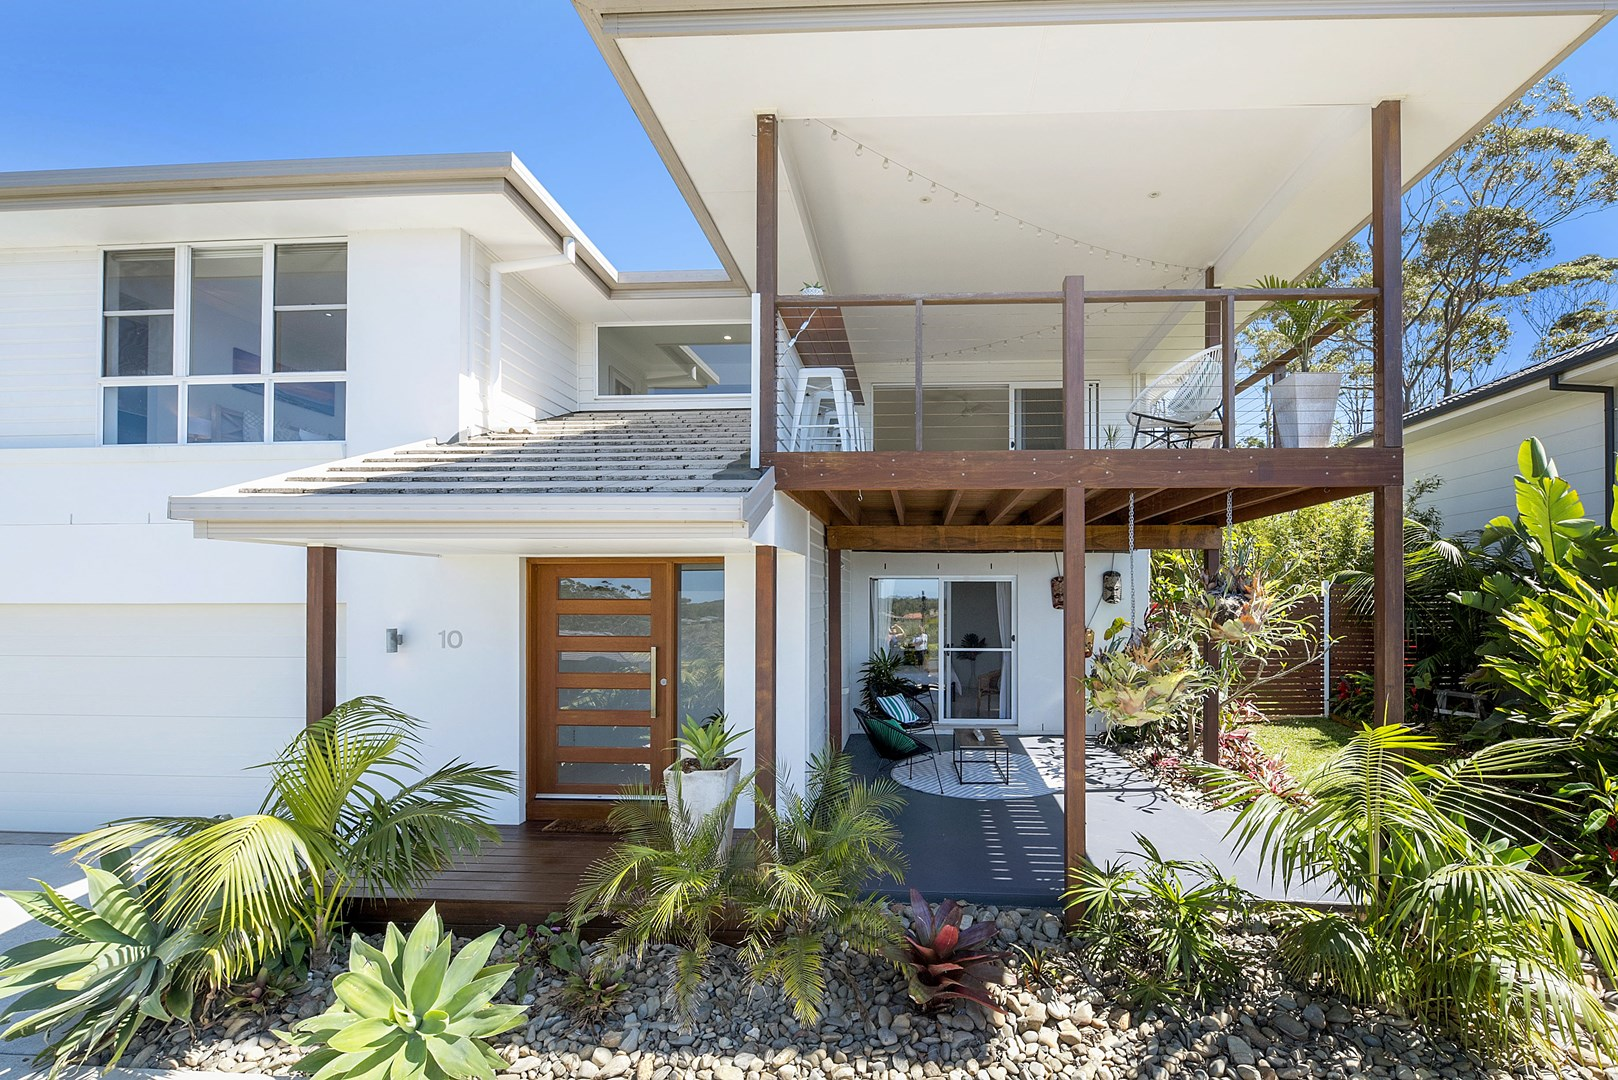 Price guide $819,000 to $839,000